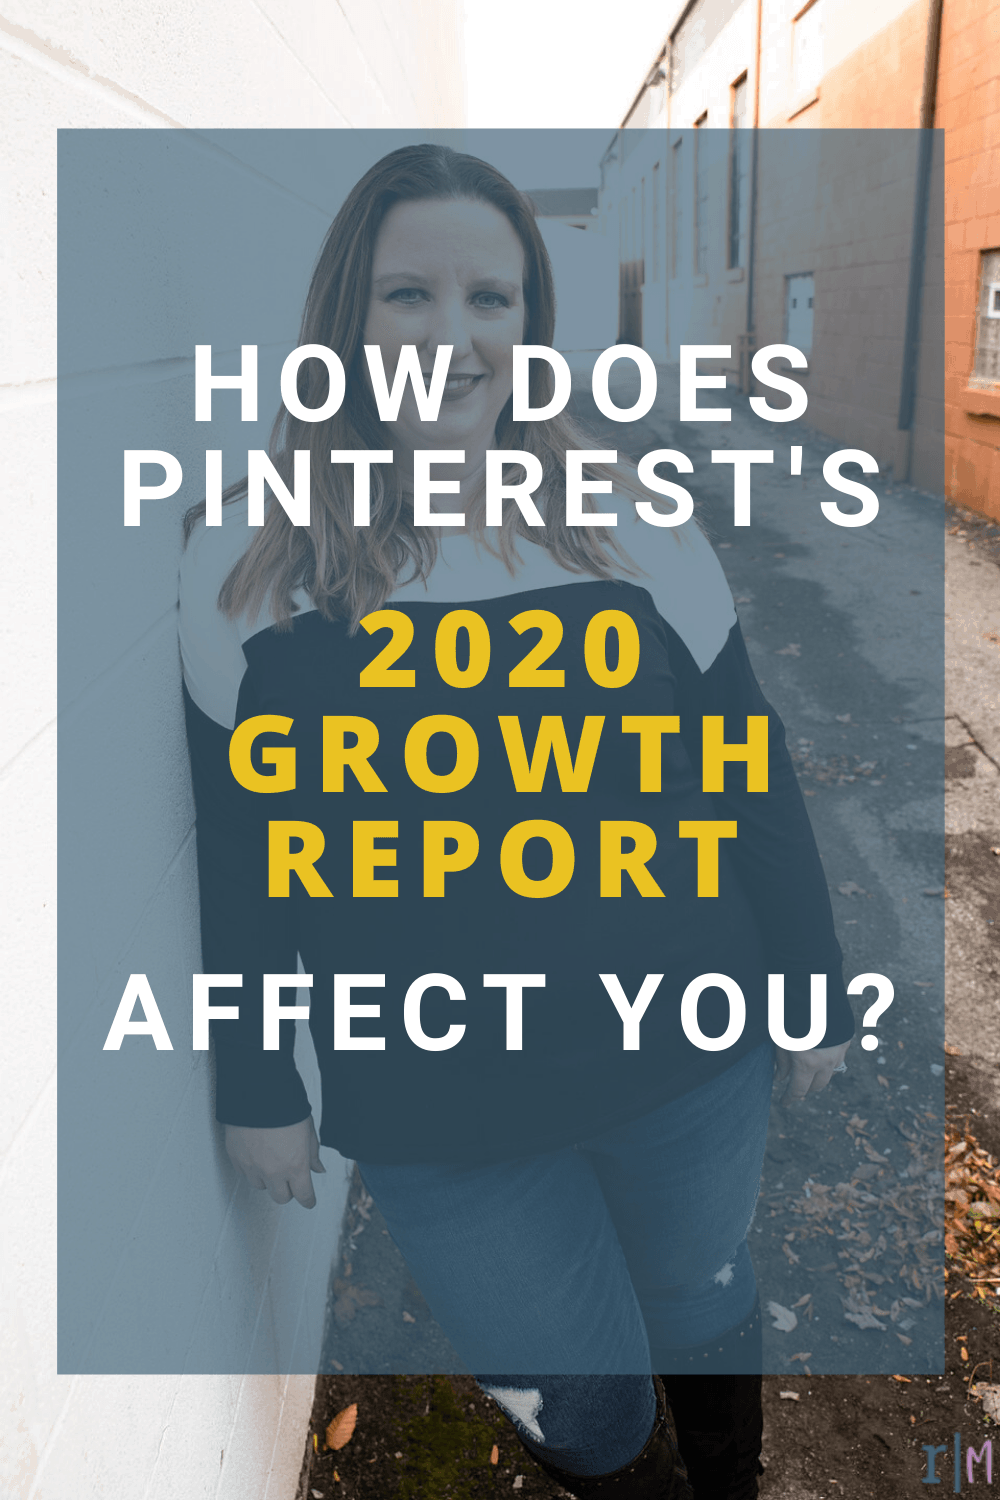 Pinterest growth in 2020 is going to be a game changer for social media!